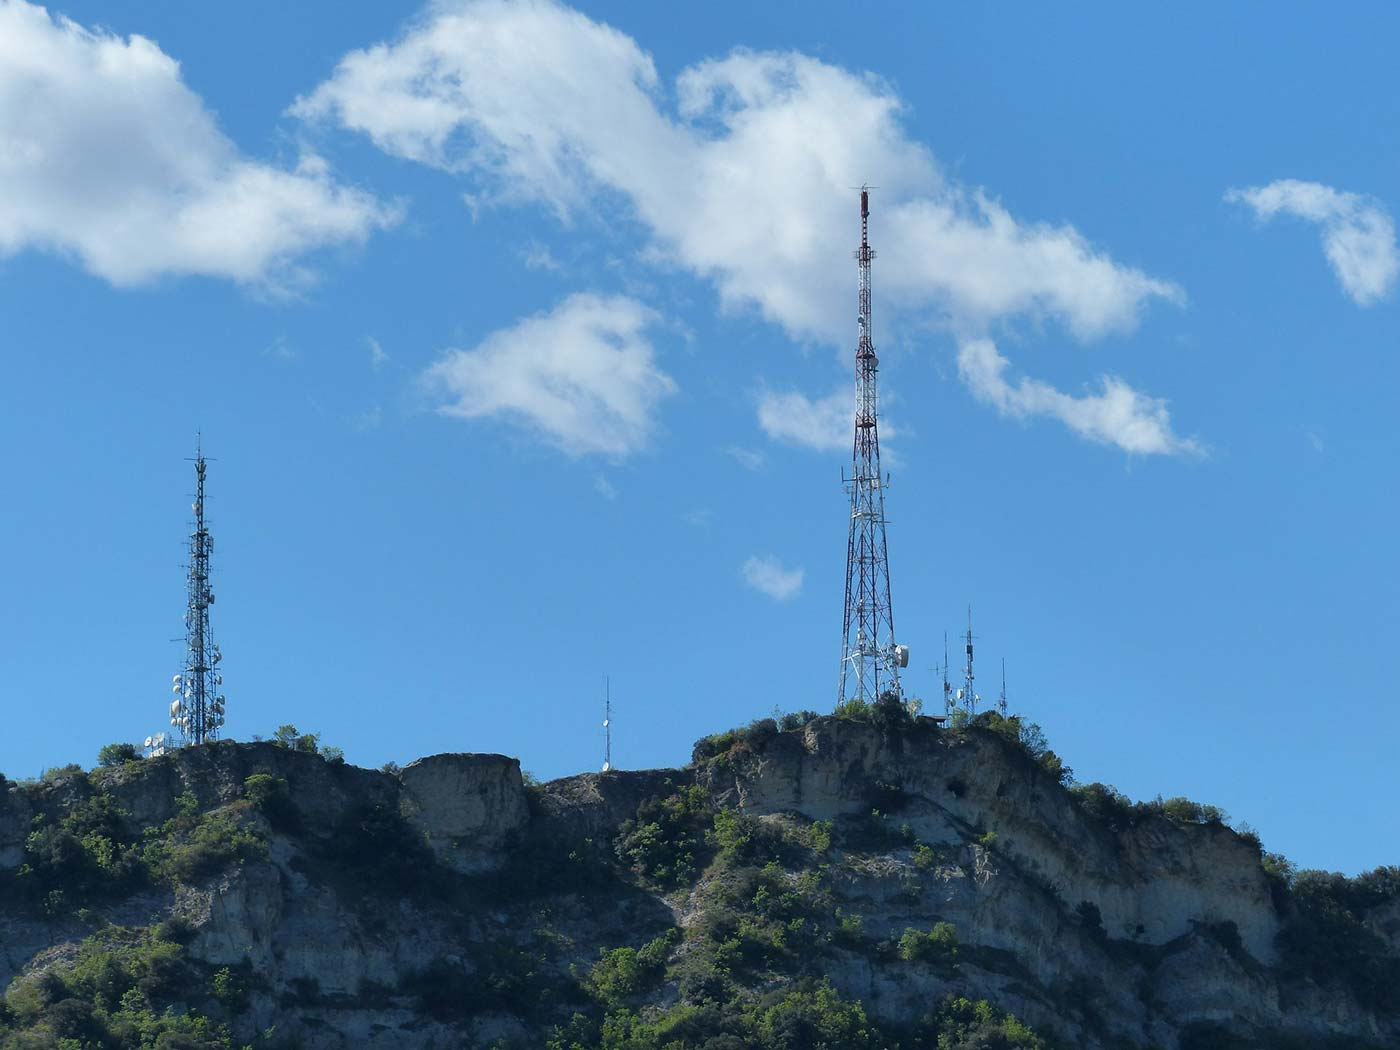 Towers on hill